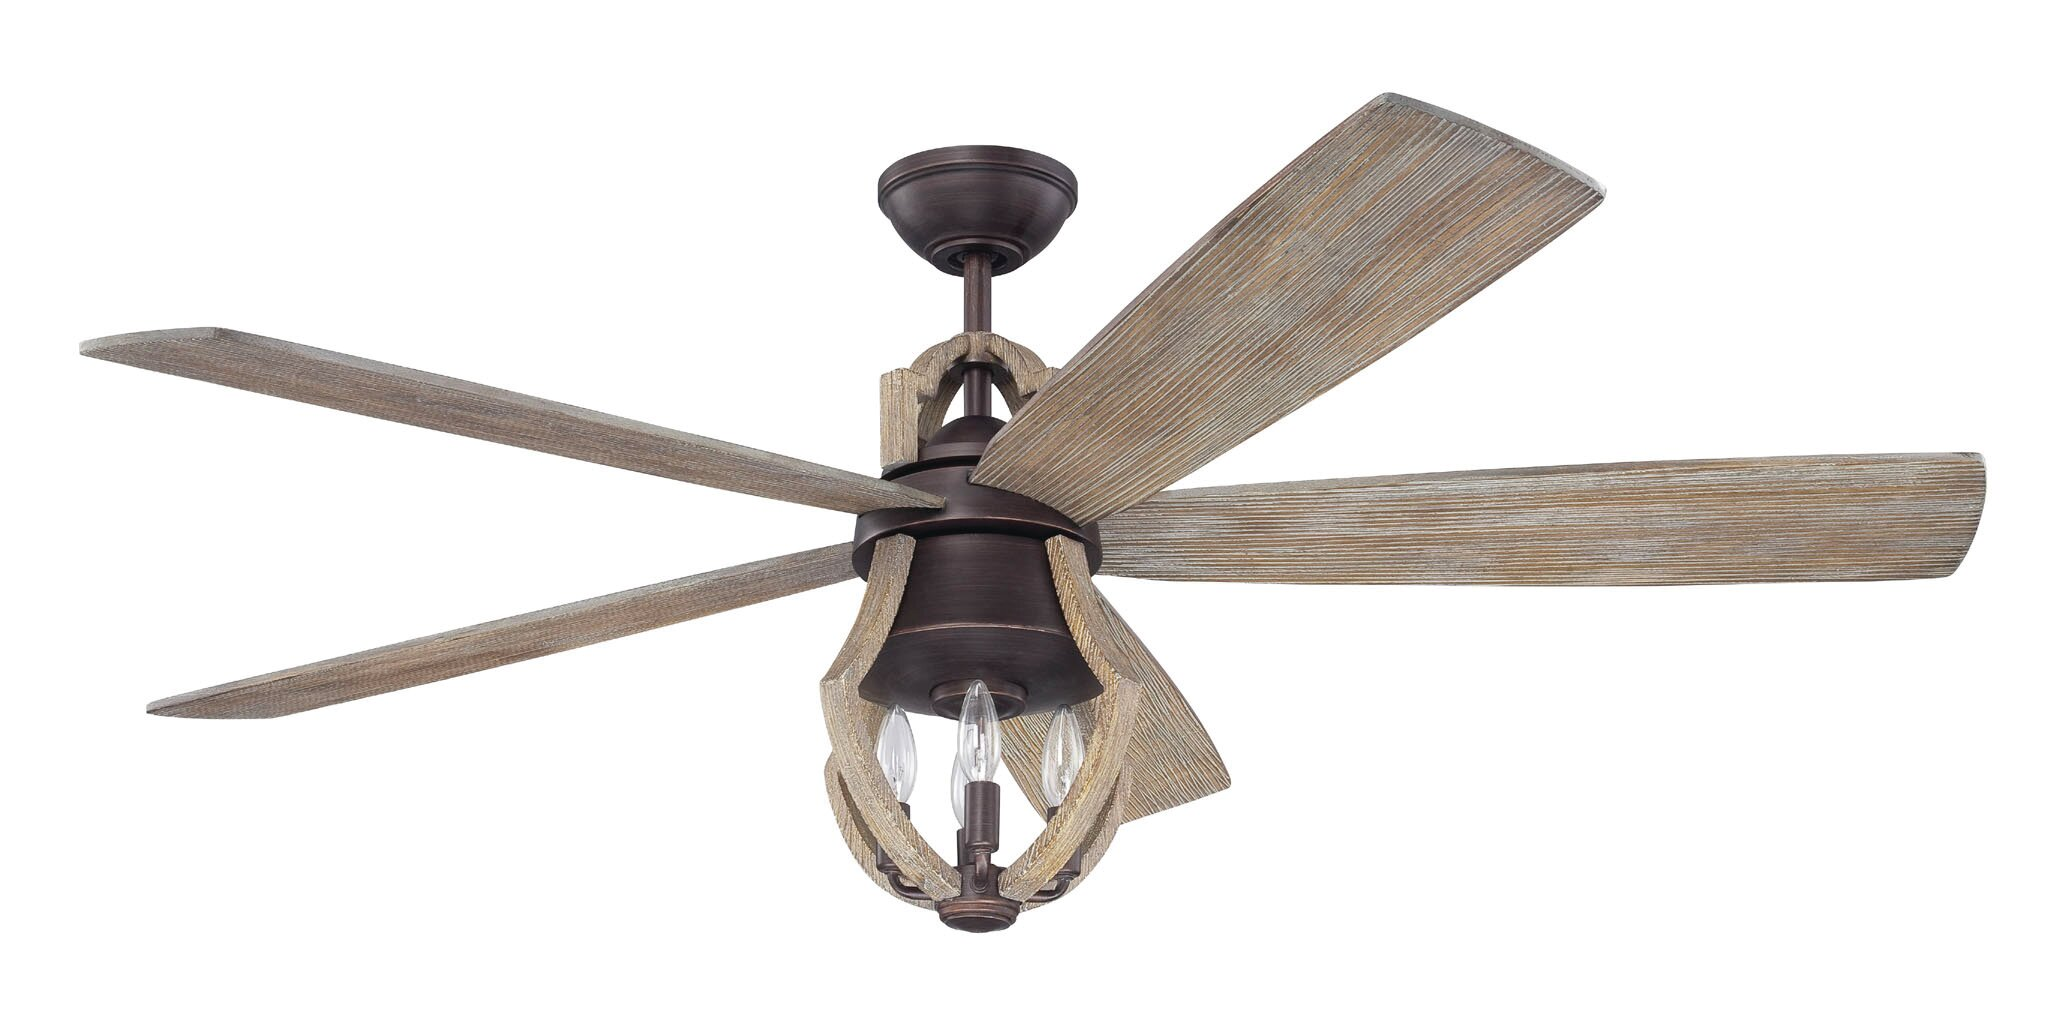 Laurel foundry modern farmhouse 56 marcoux 5 blade ceiling fan with laurel foundry modern farmhouse 56 marcoux 5 blade ceiling fan with remotes reviews wayfair aloadofball Gallery